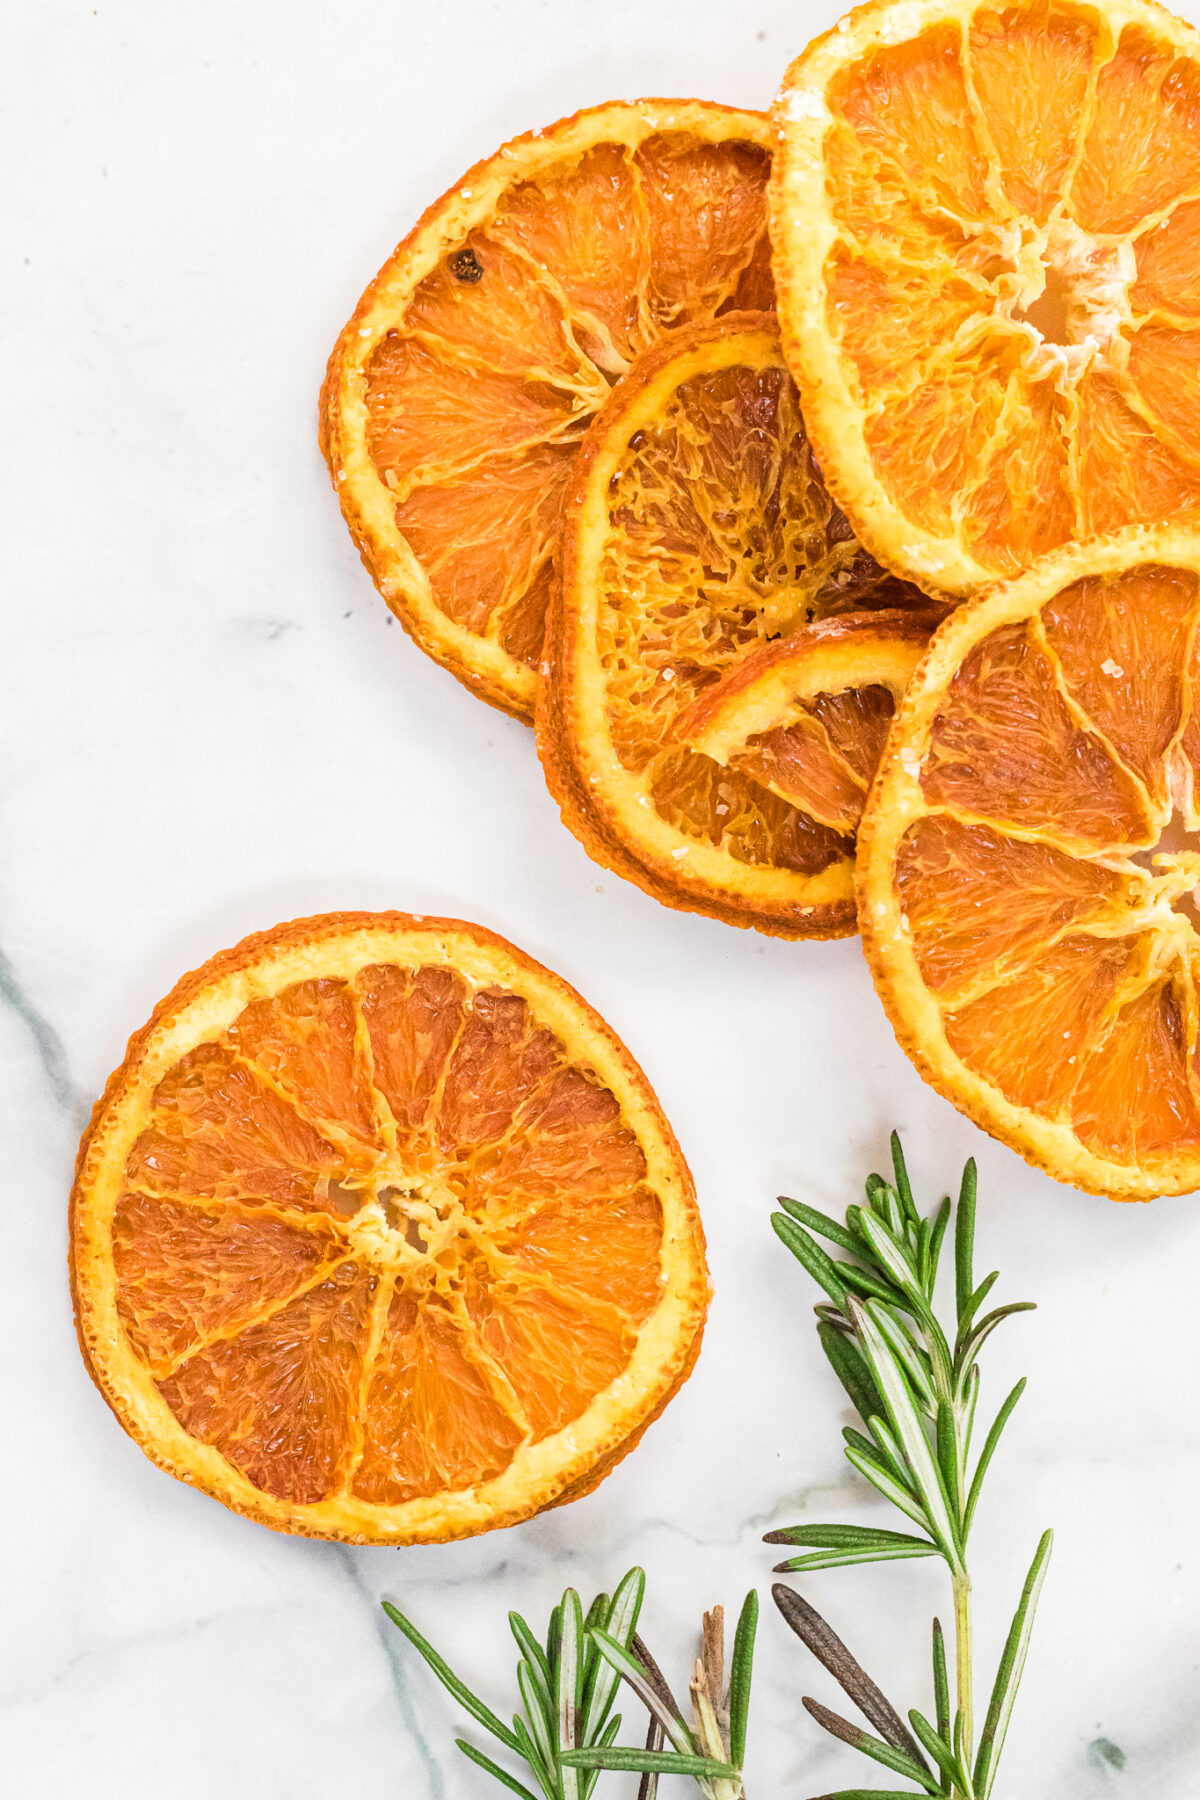 An excellent way to preserve oranges, dried orange slices can be used for craft projects, drink garnishes, or snacking.